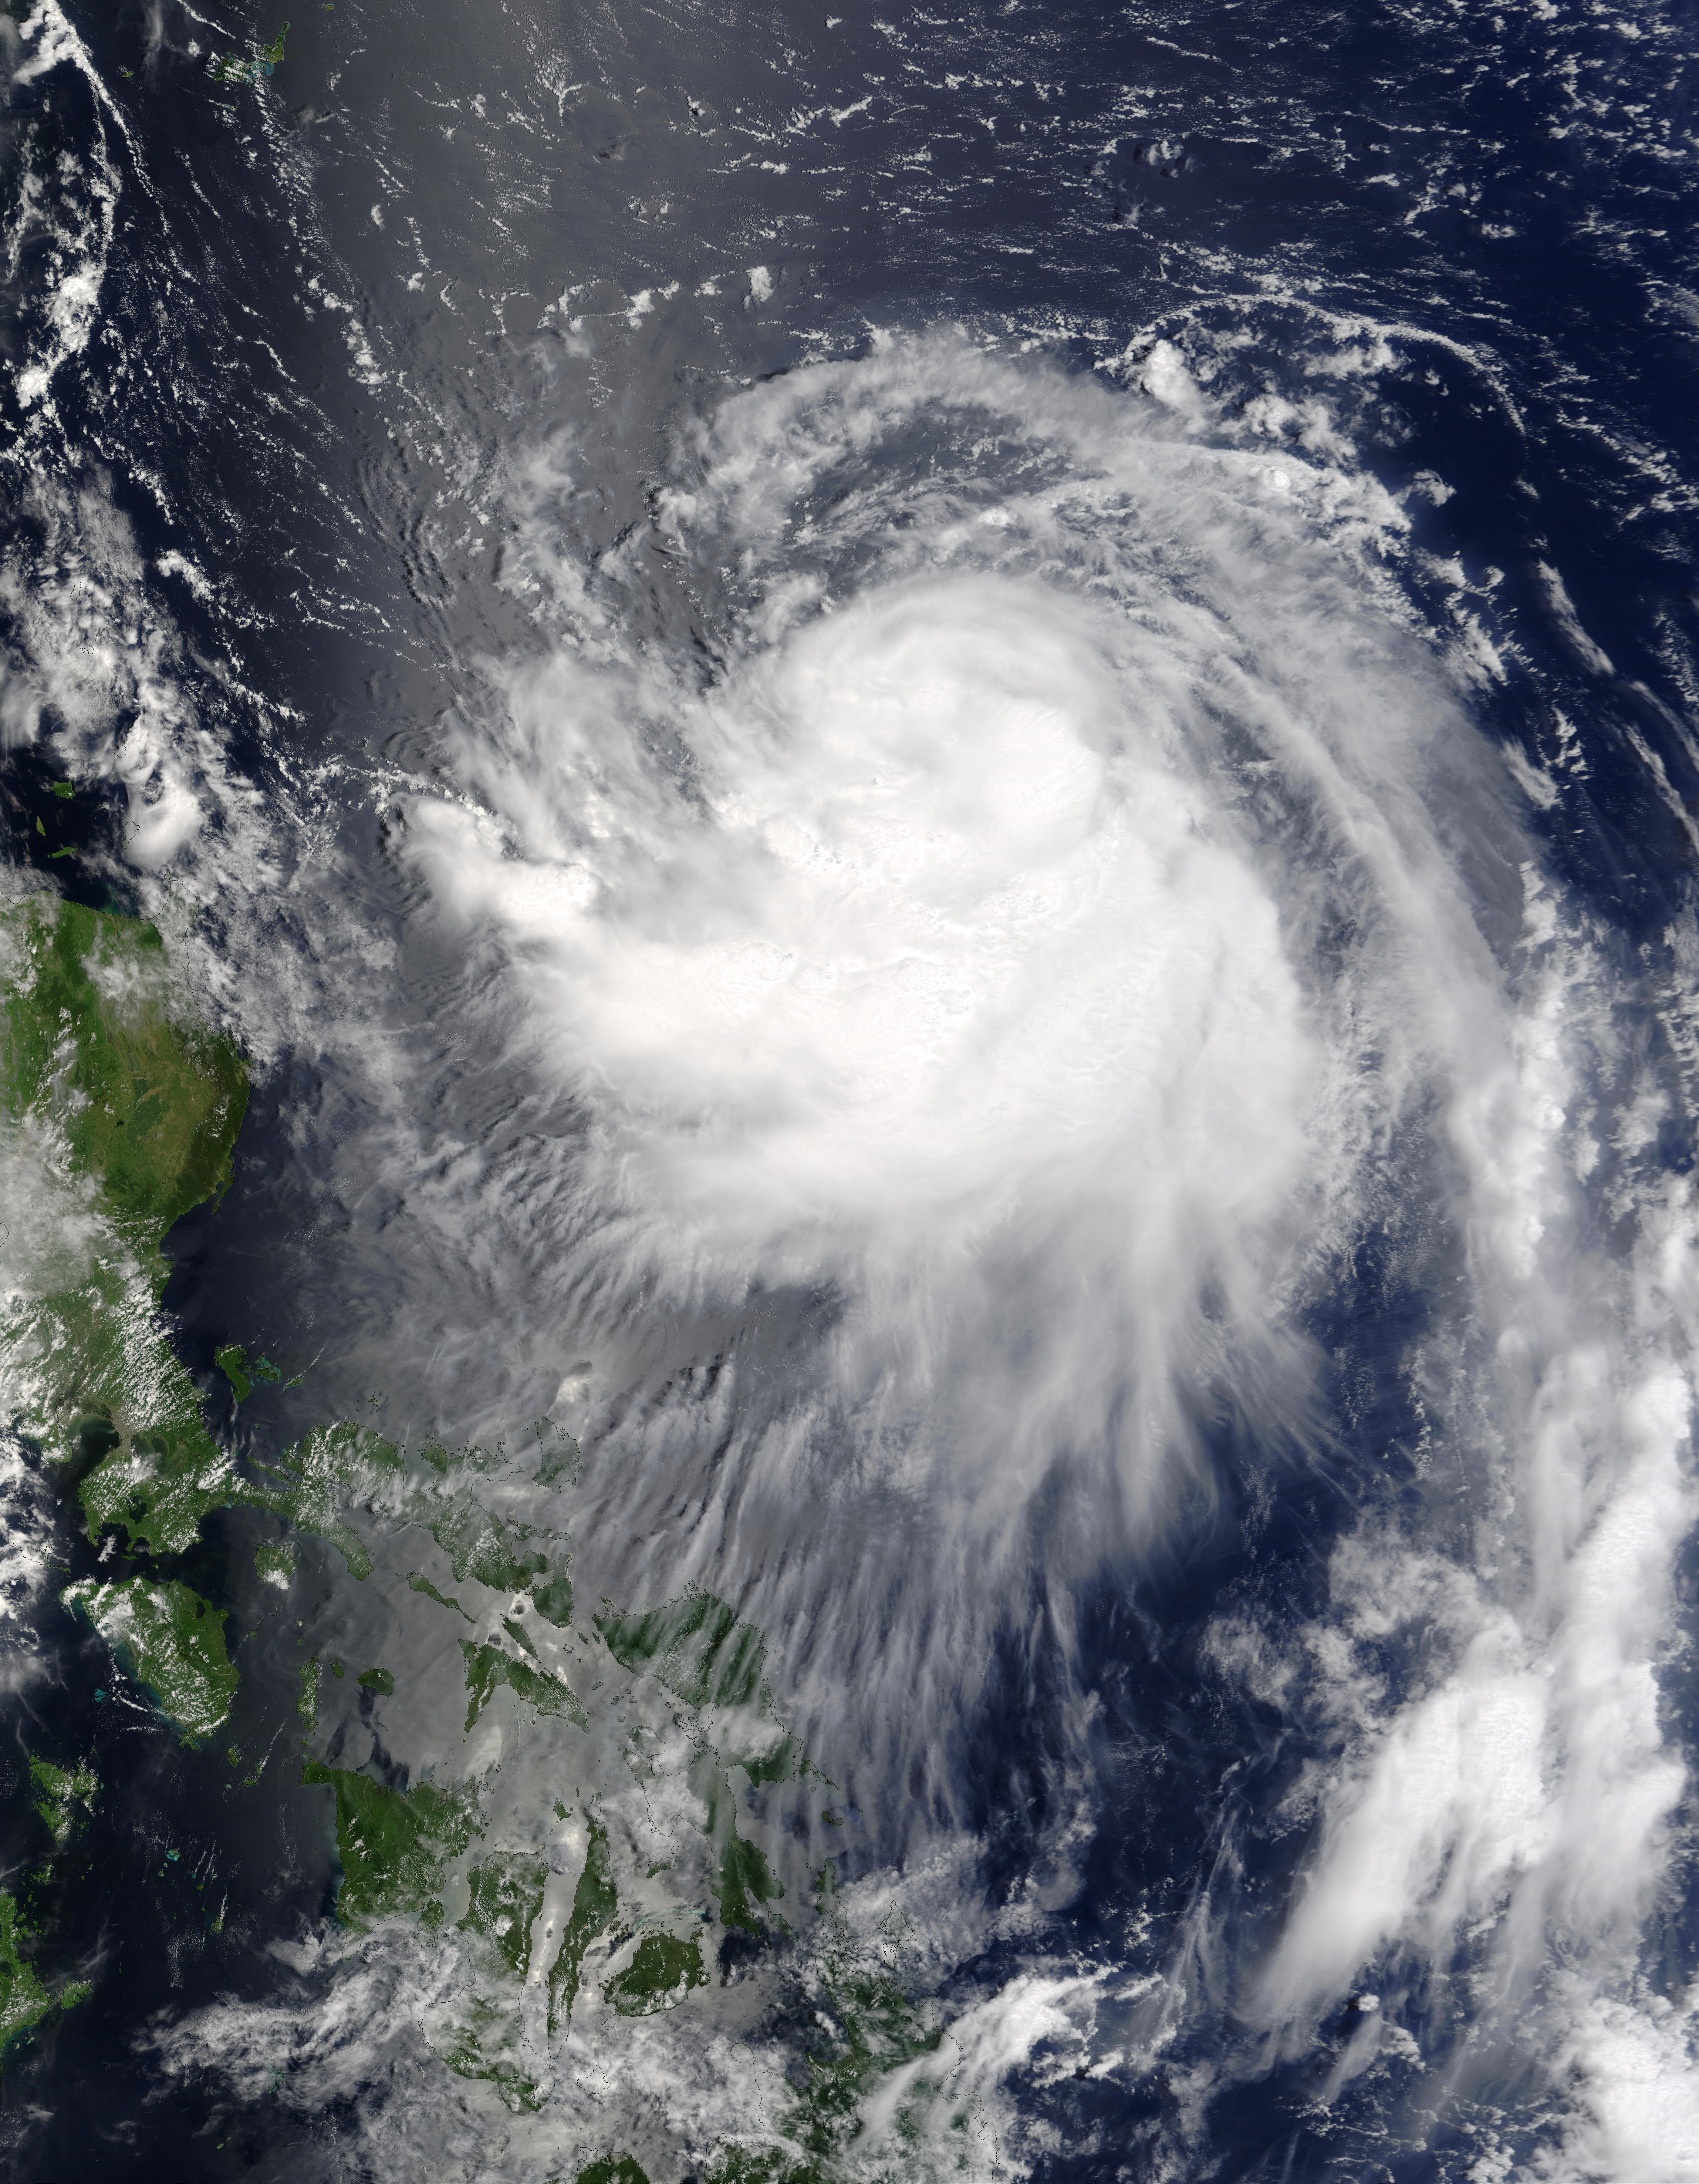 Typhoon Krovanh (12W) approaching the Philippines